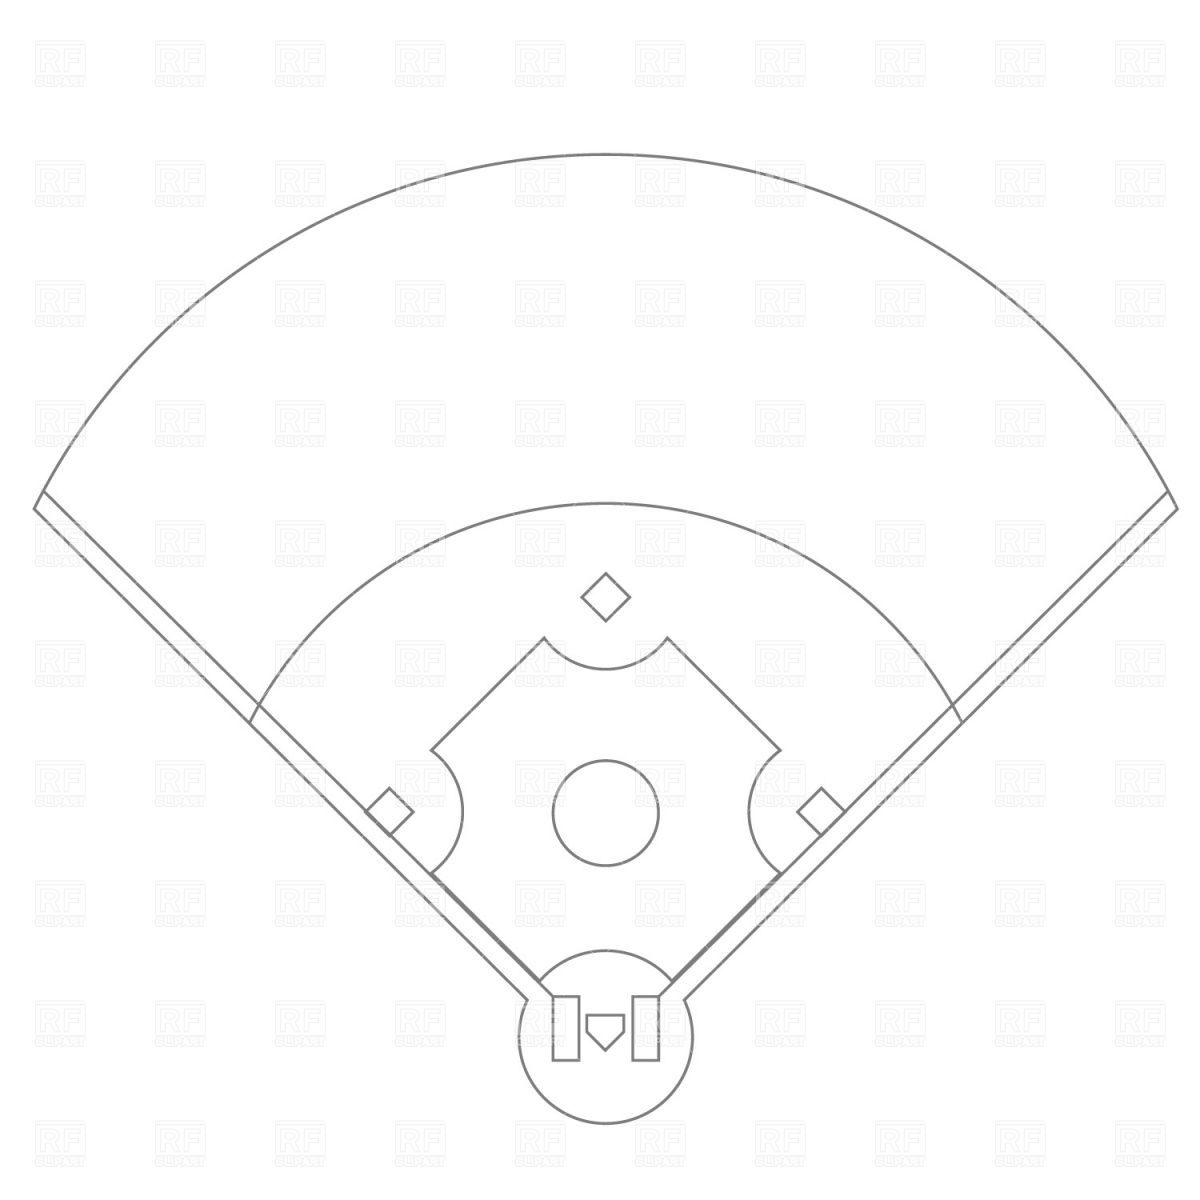 baseball field clip art free more at recipins com